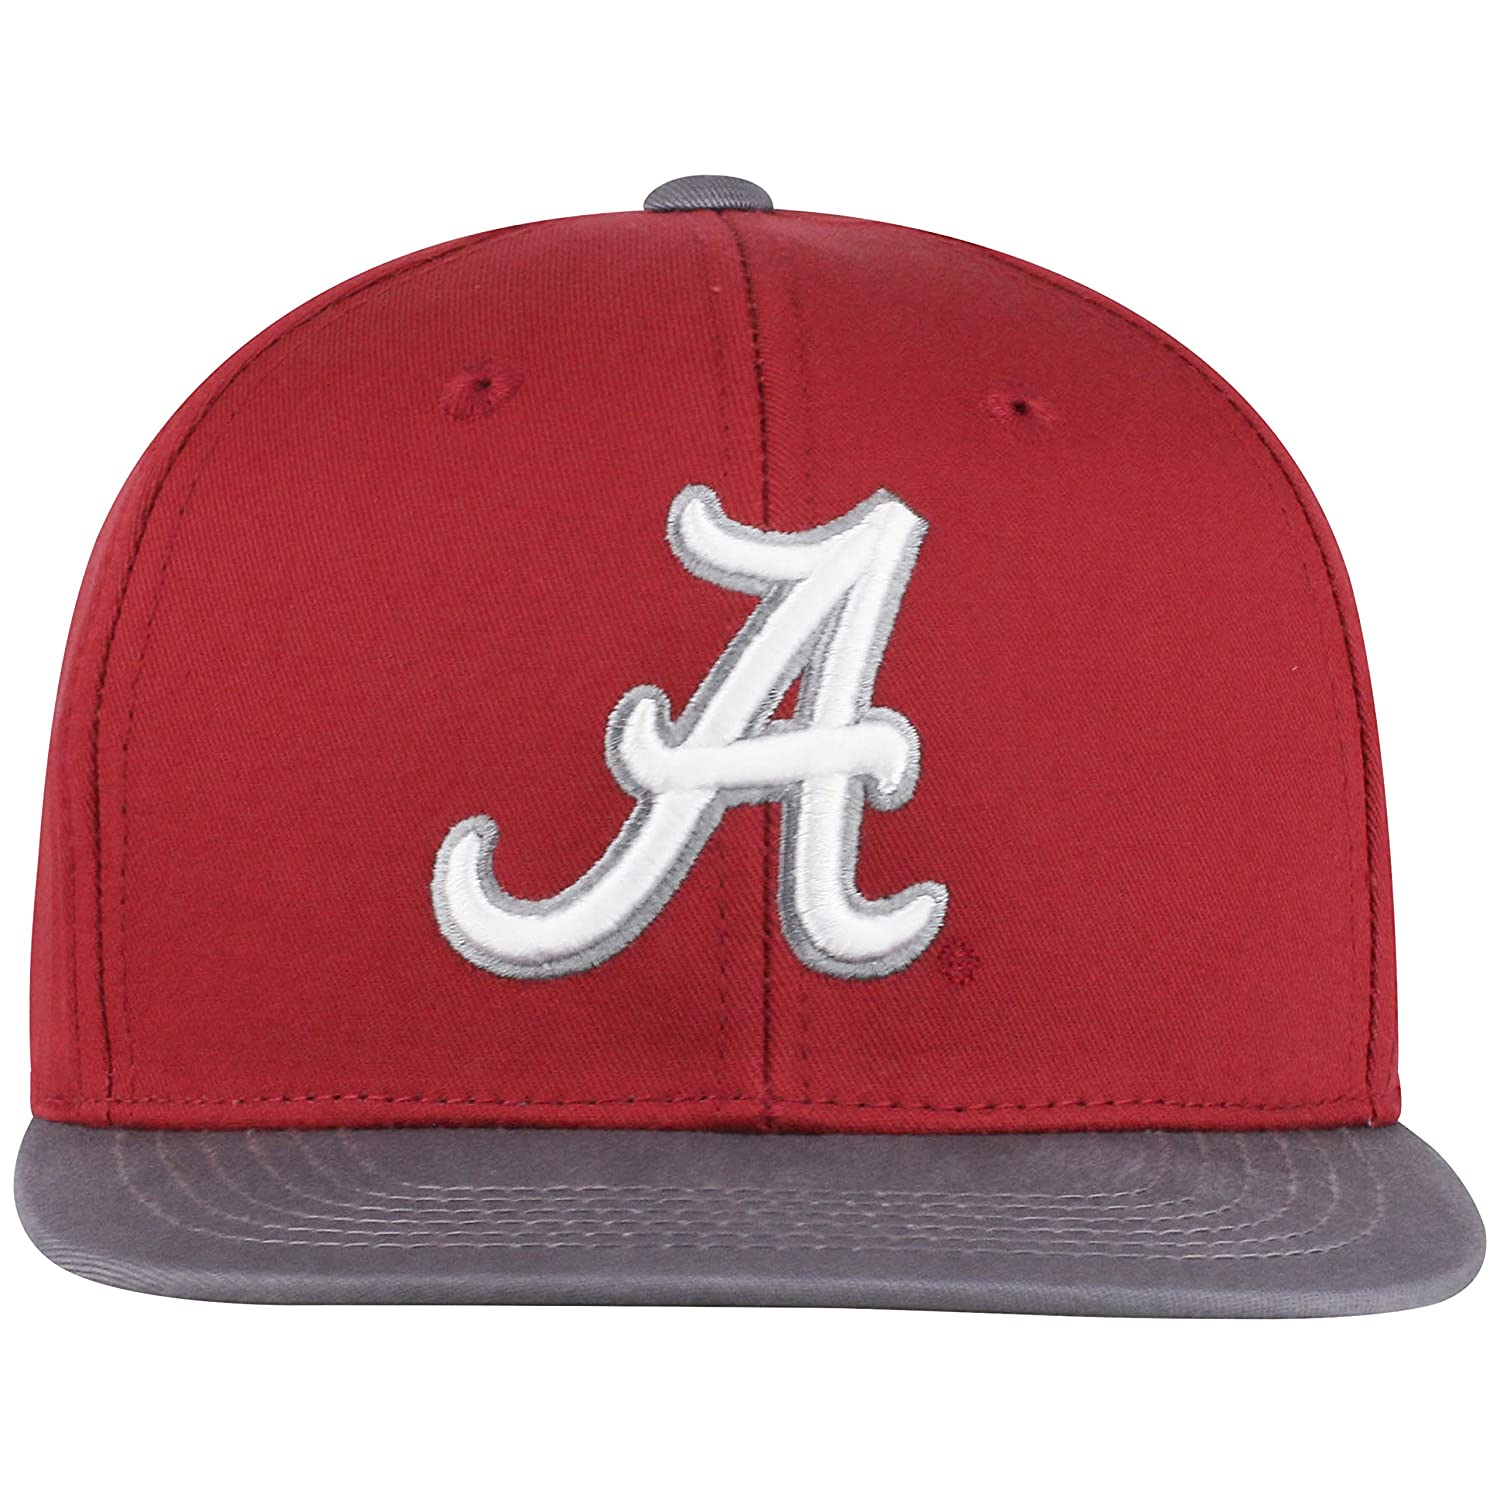 watch 69998 8dd7d Amazon.com   Top of the World Alabama Crimson Tide Maverick Youth Flat Bill  Snapback Adjustable Hat   Clothing